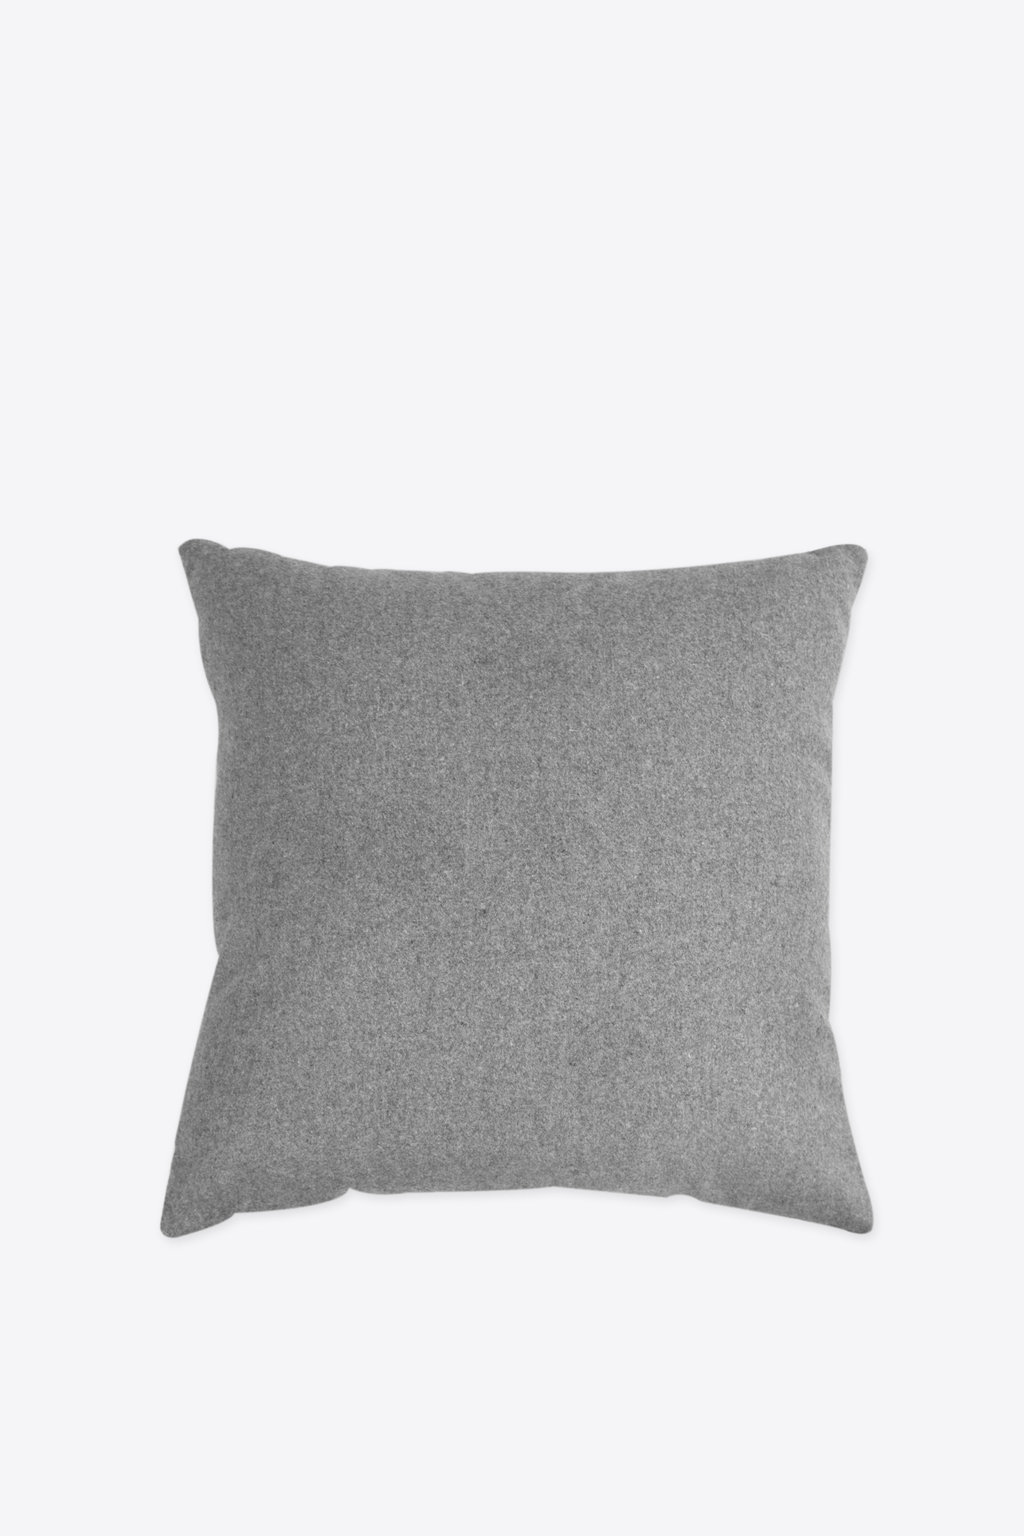 Felt Throw Pillow 2336 Light Gray 4